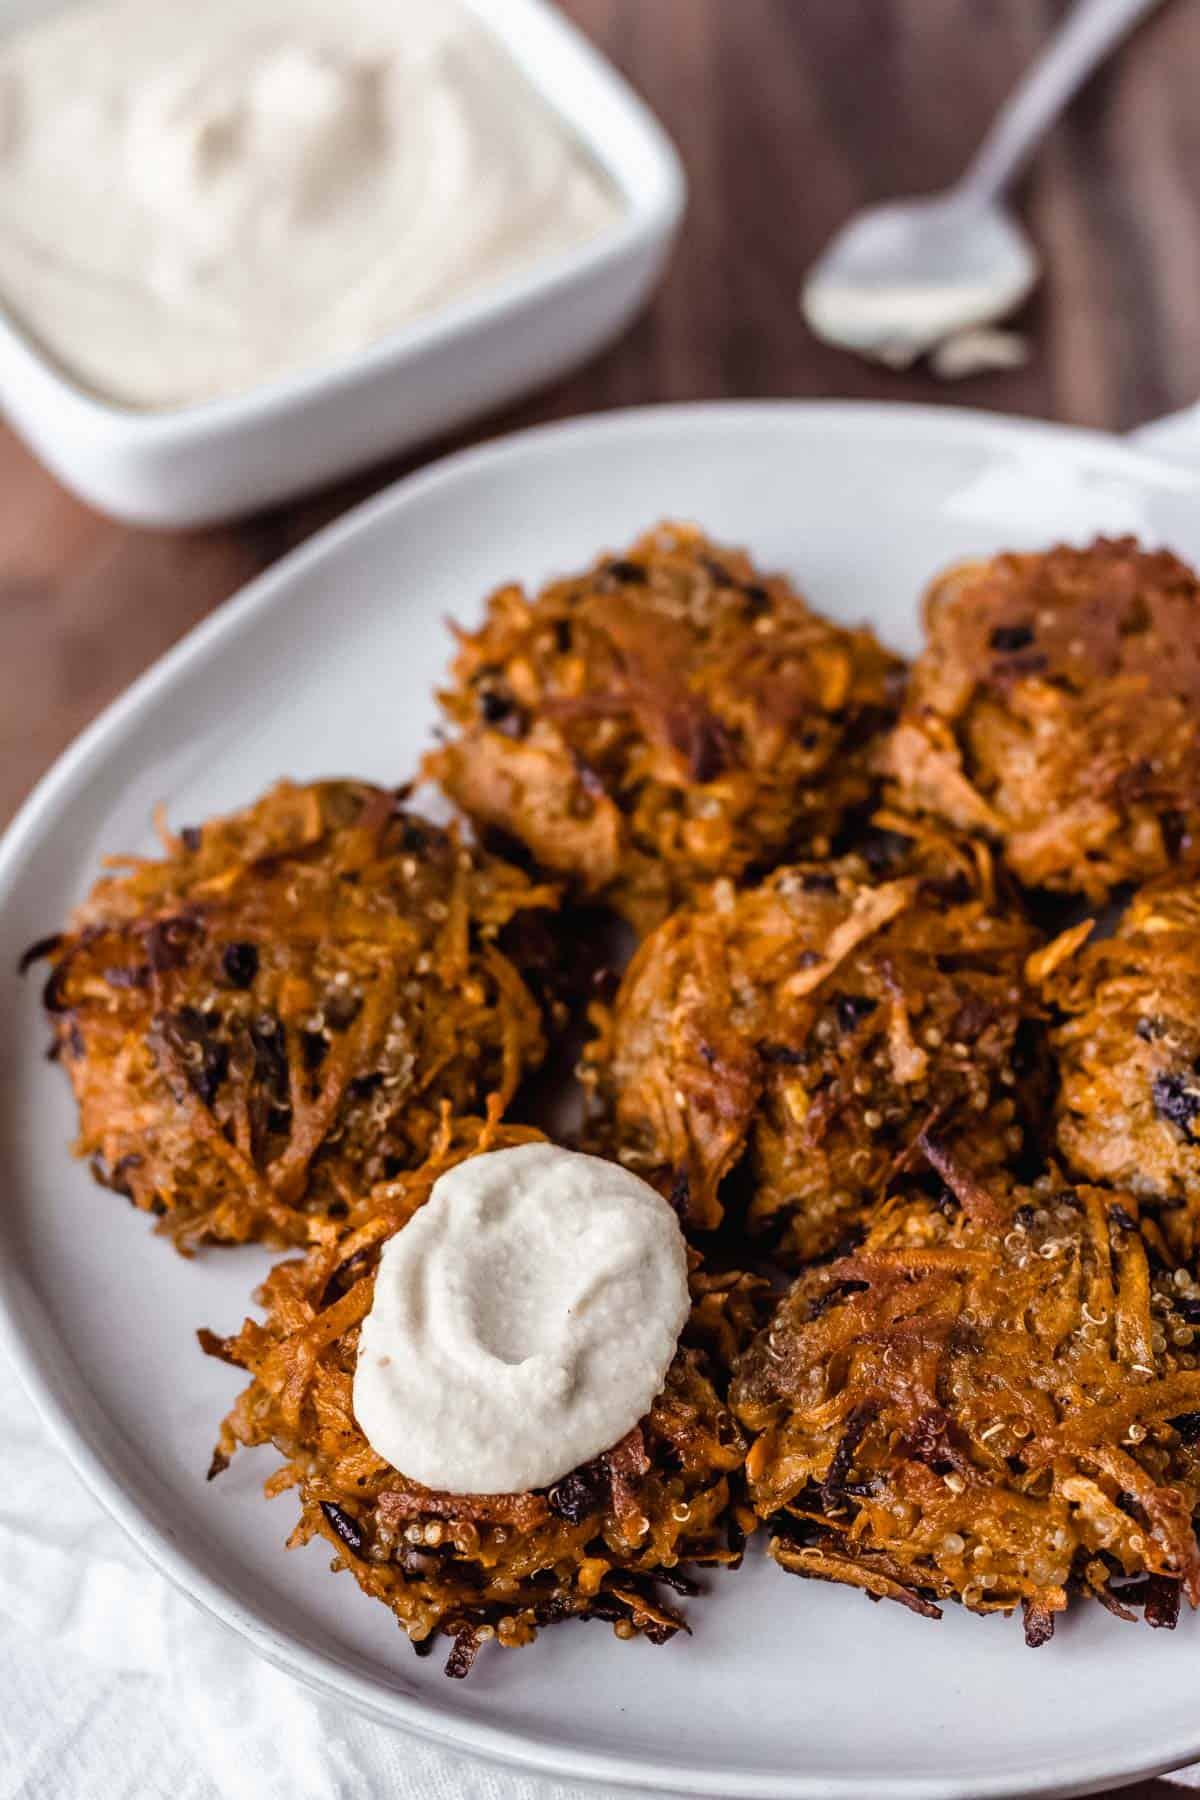 Sweet potato fritters on a round serving plate with one fritter topped with a sauce, a square bowl of sauce and a spoon in the background